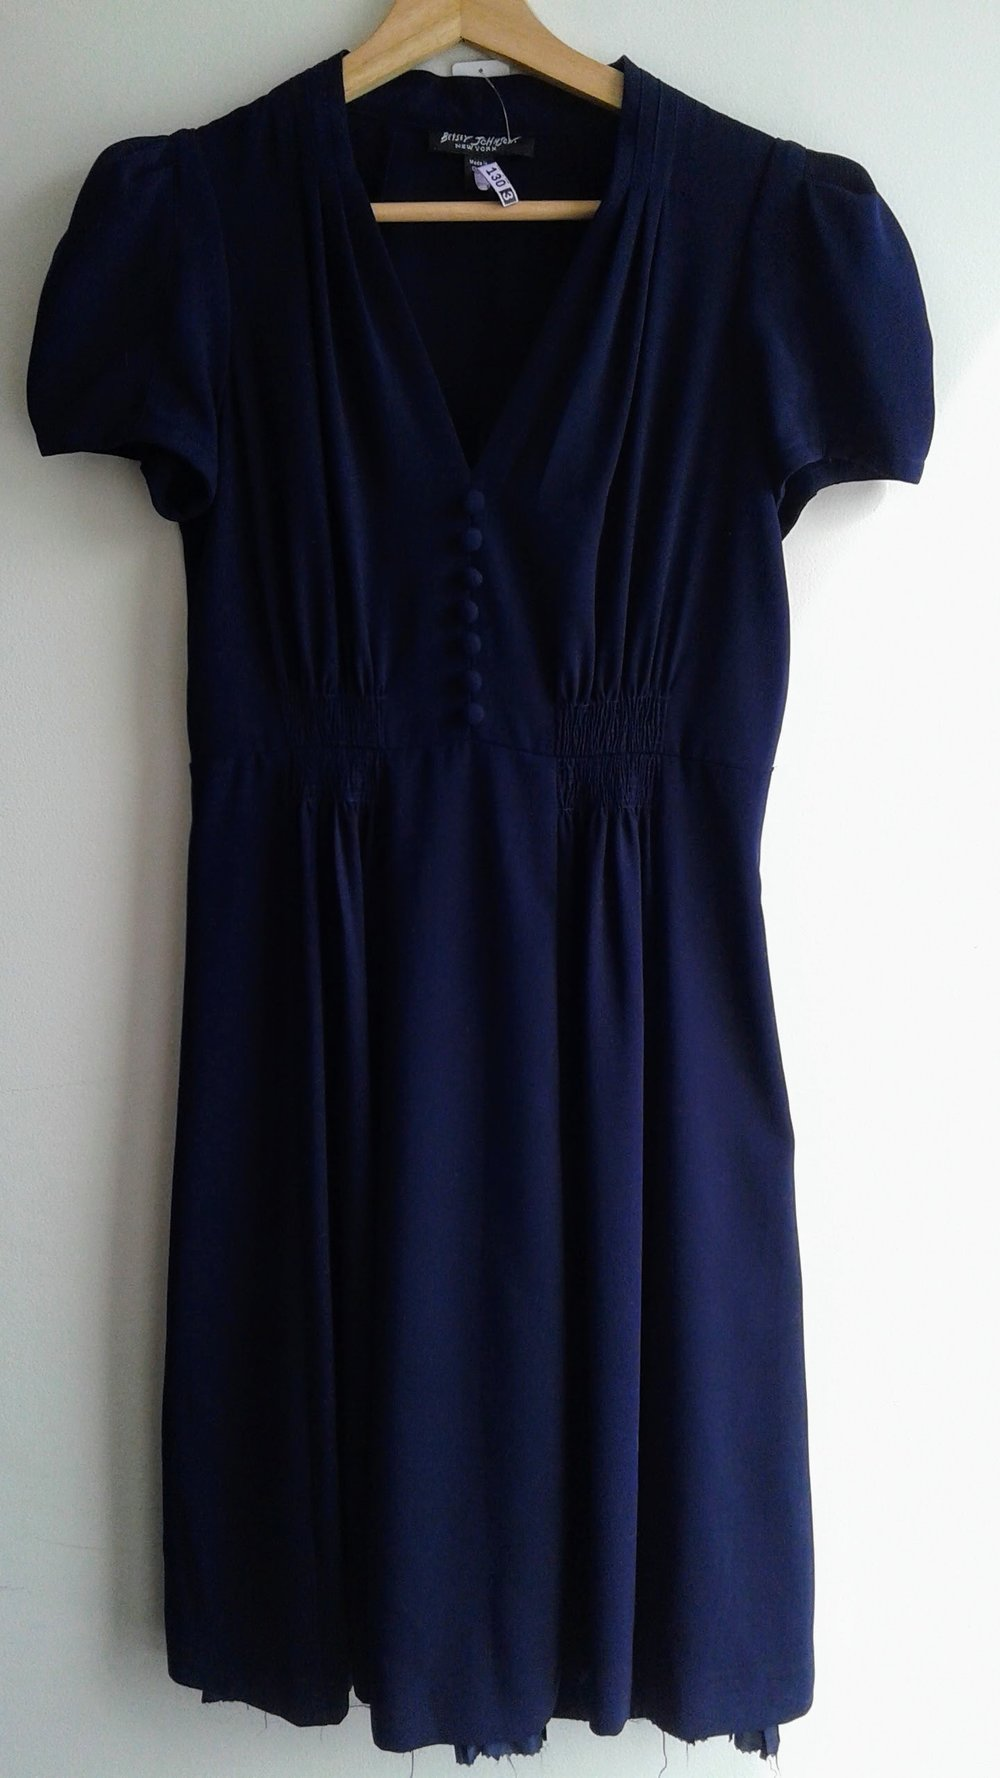 Betsy Johnson dress; Size 6, $48